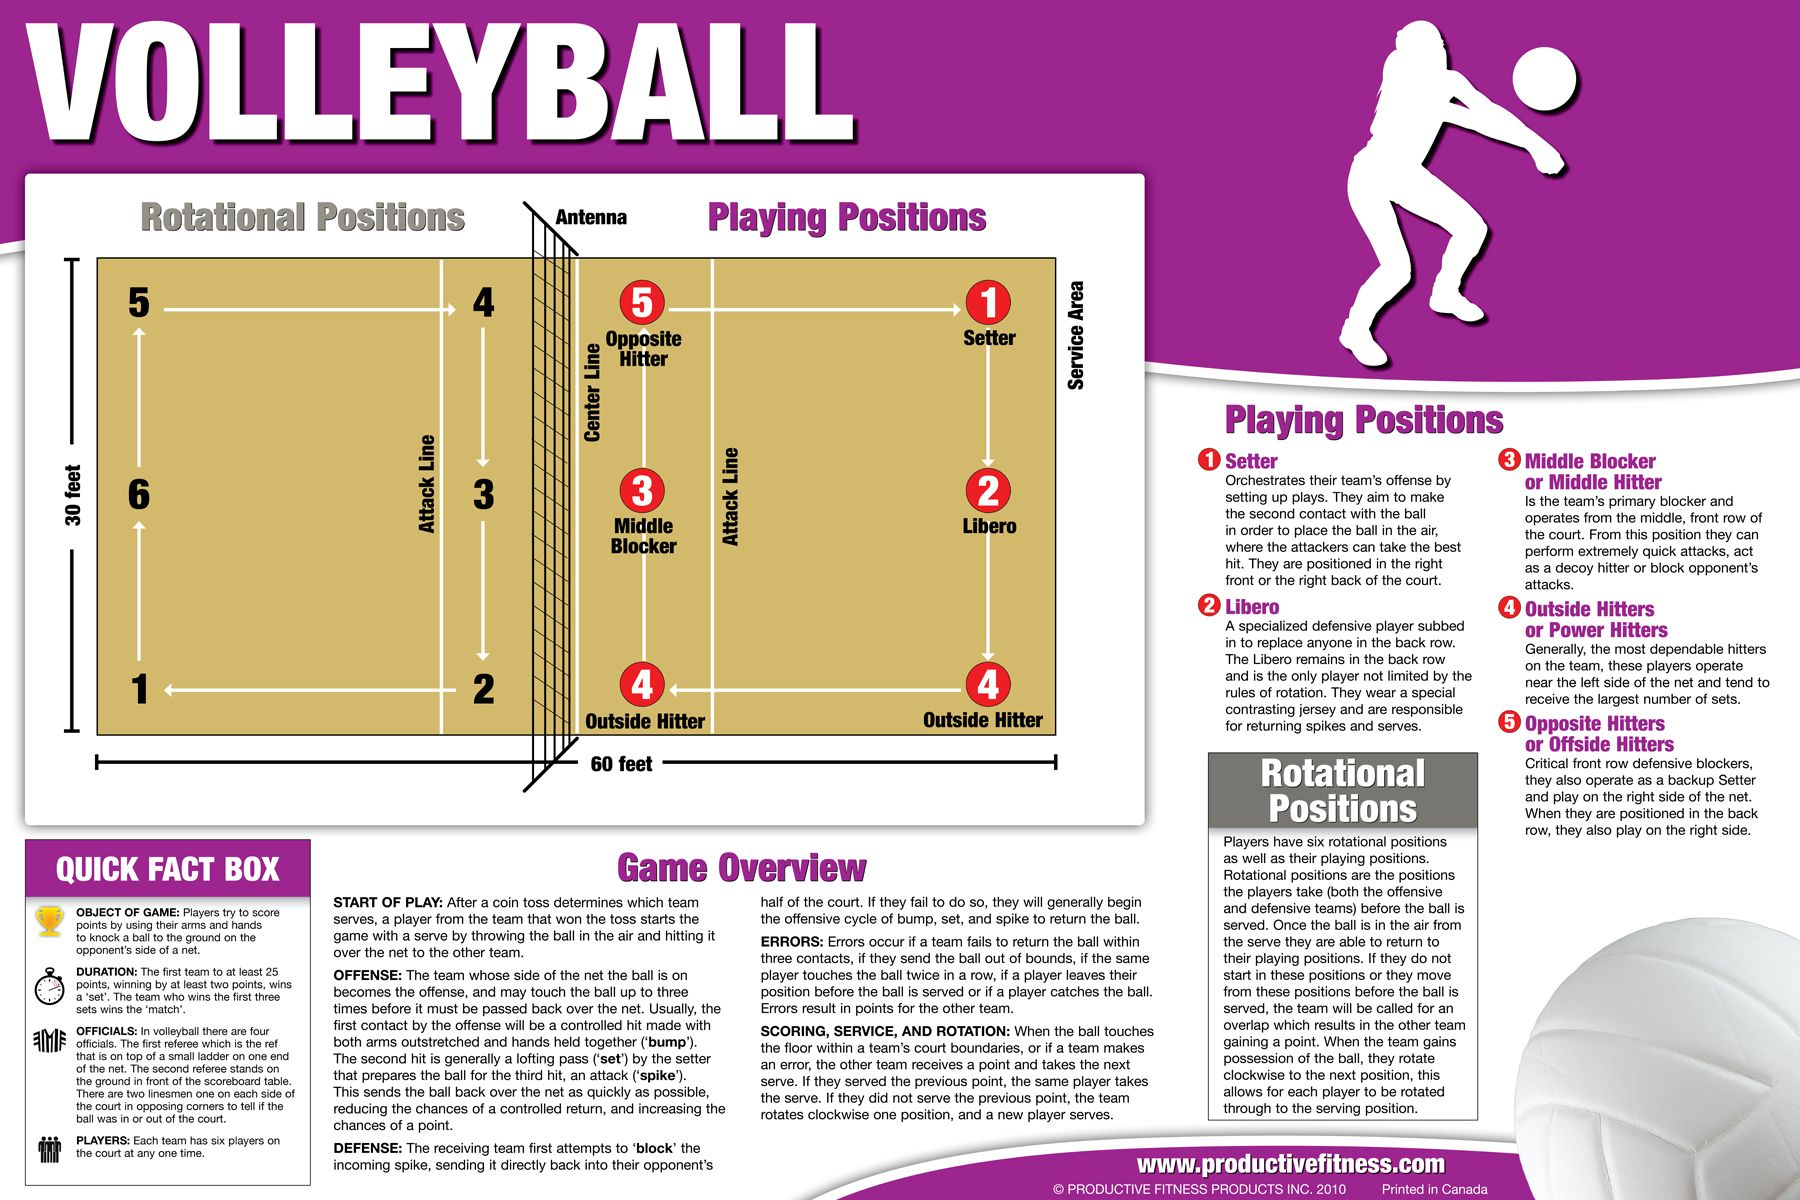 Volleyball Poster Chart 24 95 Our Volleyball Overview Poster Is Perfect To Gain An Easier Understandin Volleyball Rules Volleyball Posters Sport Volleyball